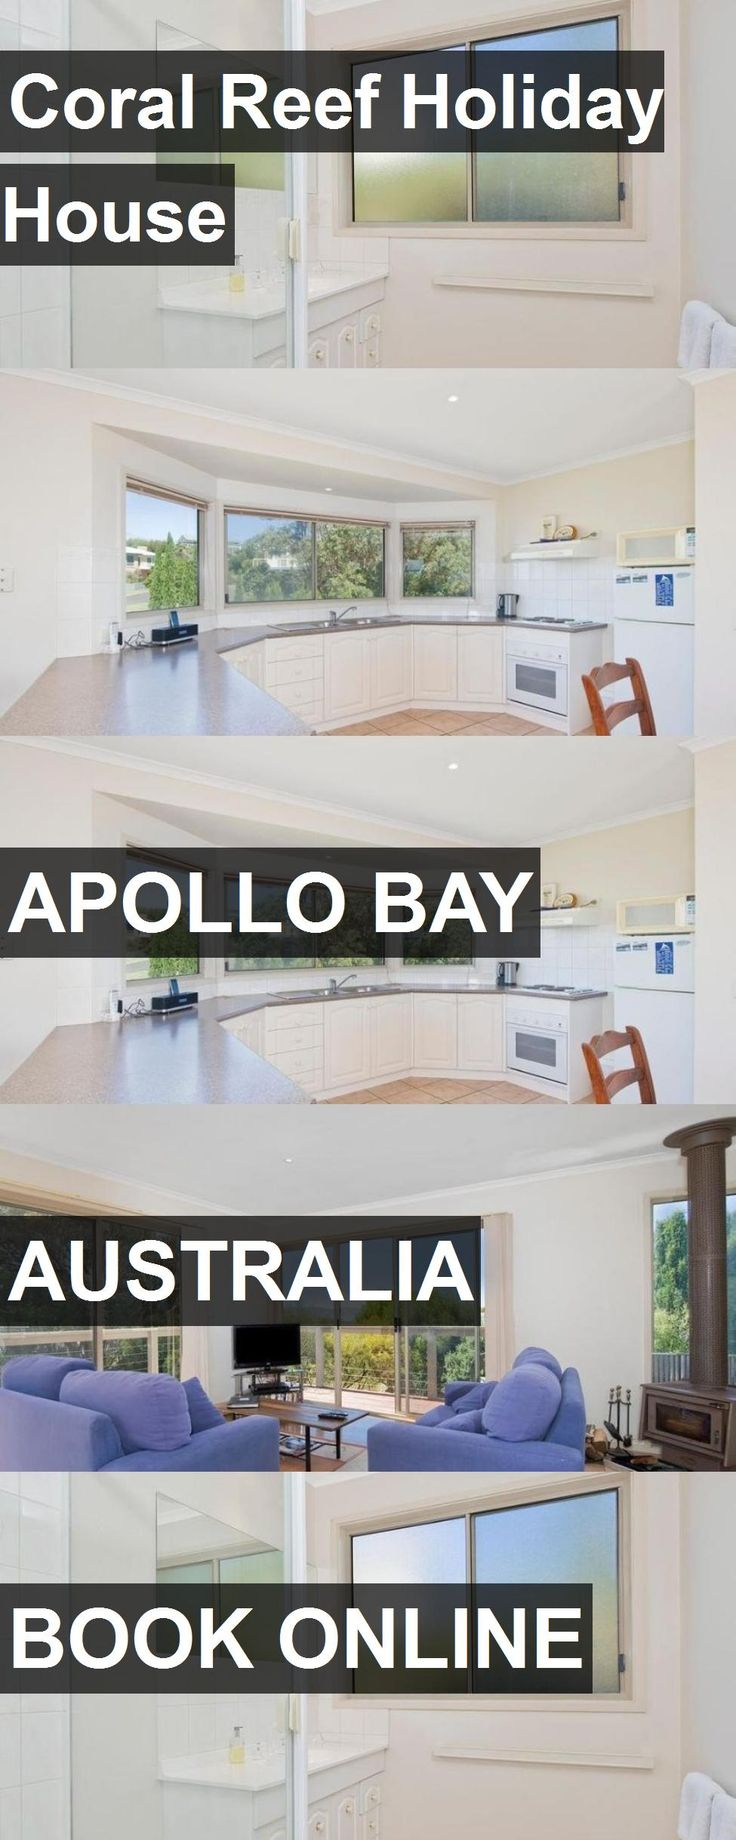 Hotel Coral Reef Holiday House in Apollo Bay, Australia. For more information, photos, reviews and best prices please follow the link. #Australia #ApolloBay #travel #vacation #hotel